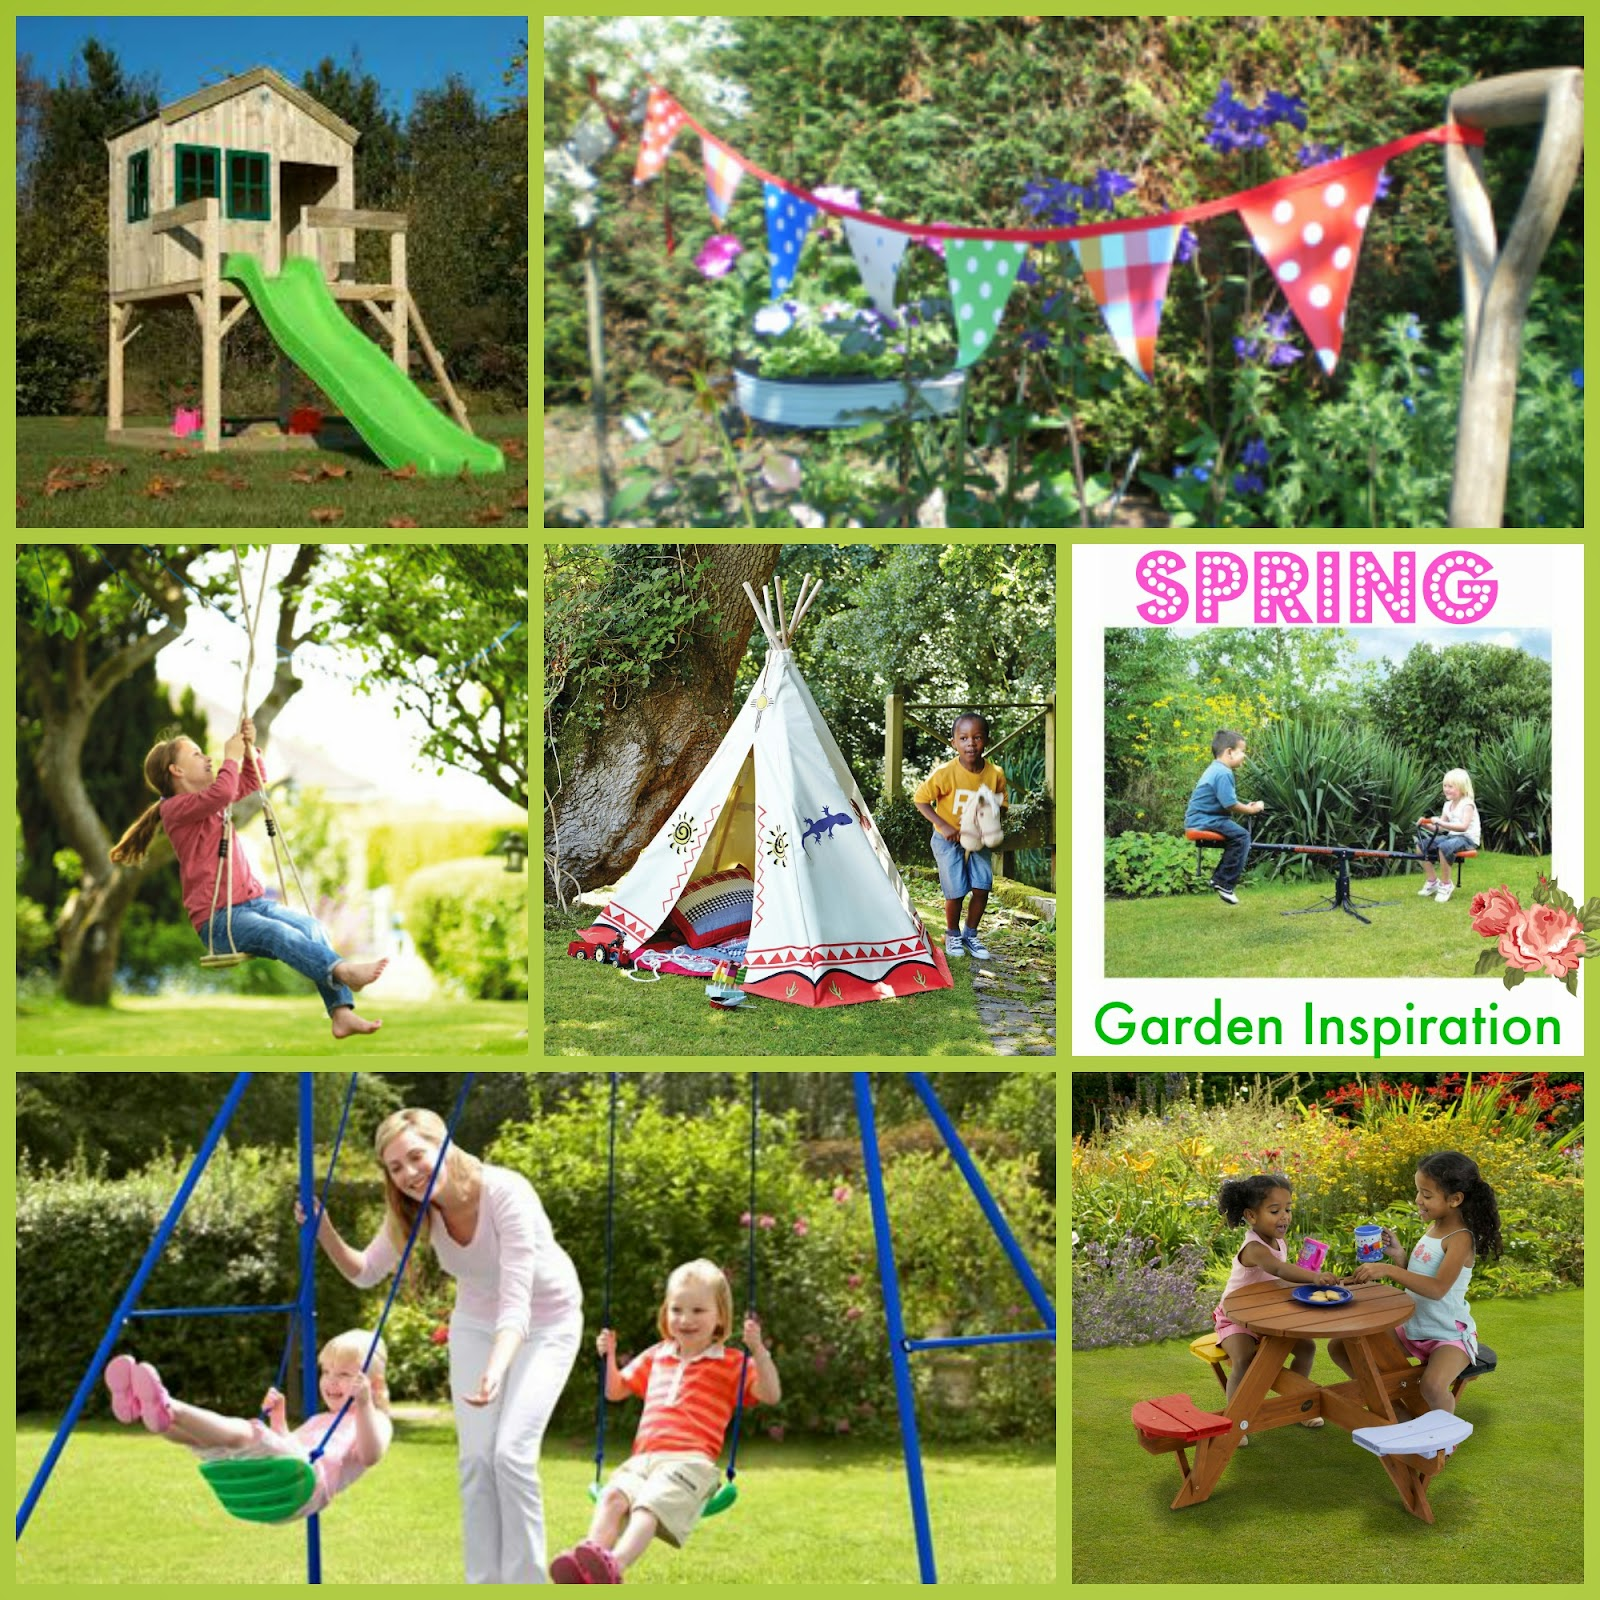 Outdoor Toys Spring Garden Inspiration